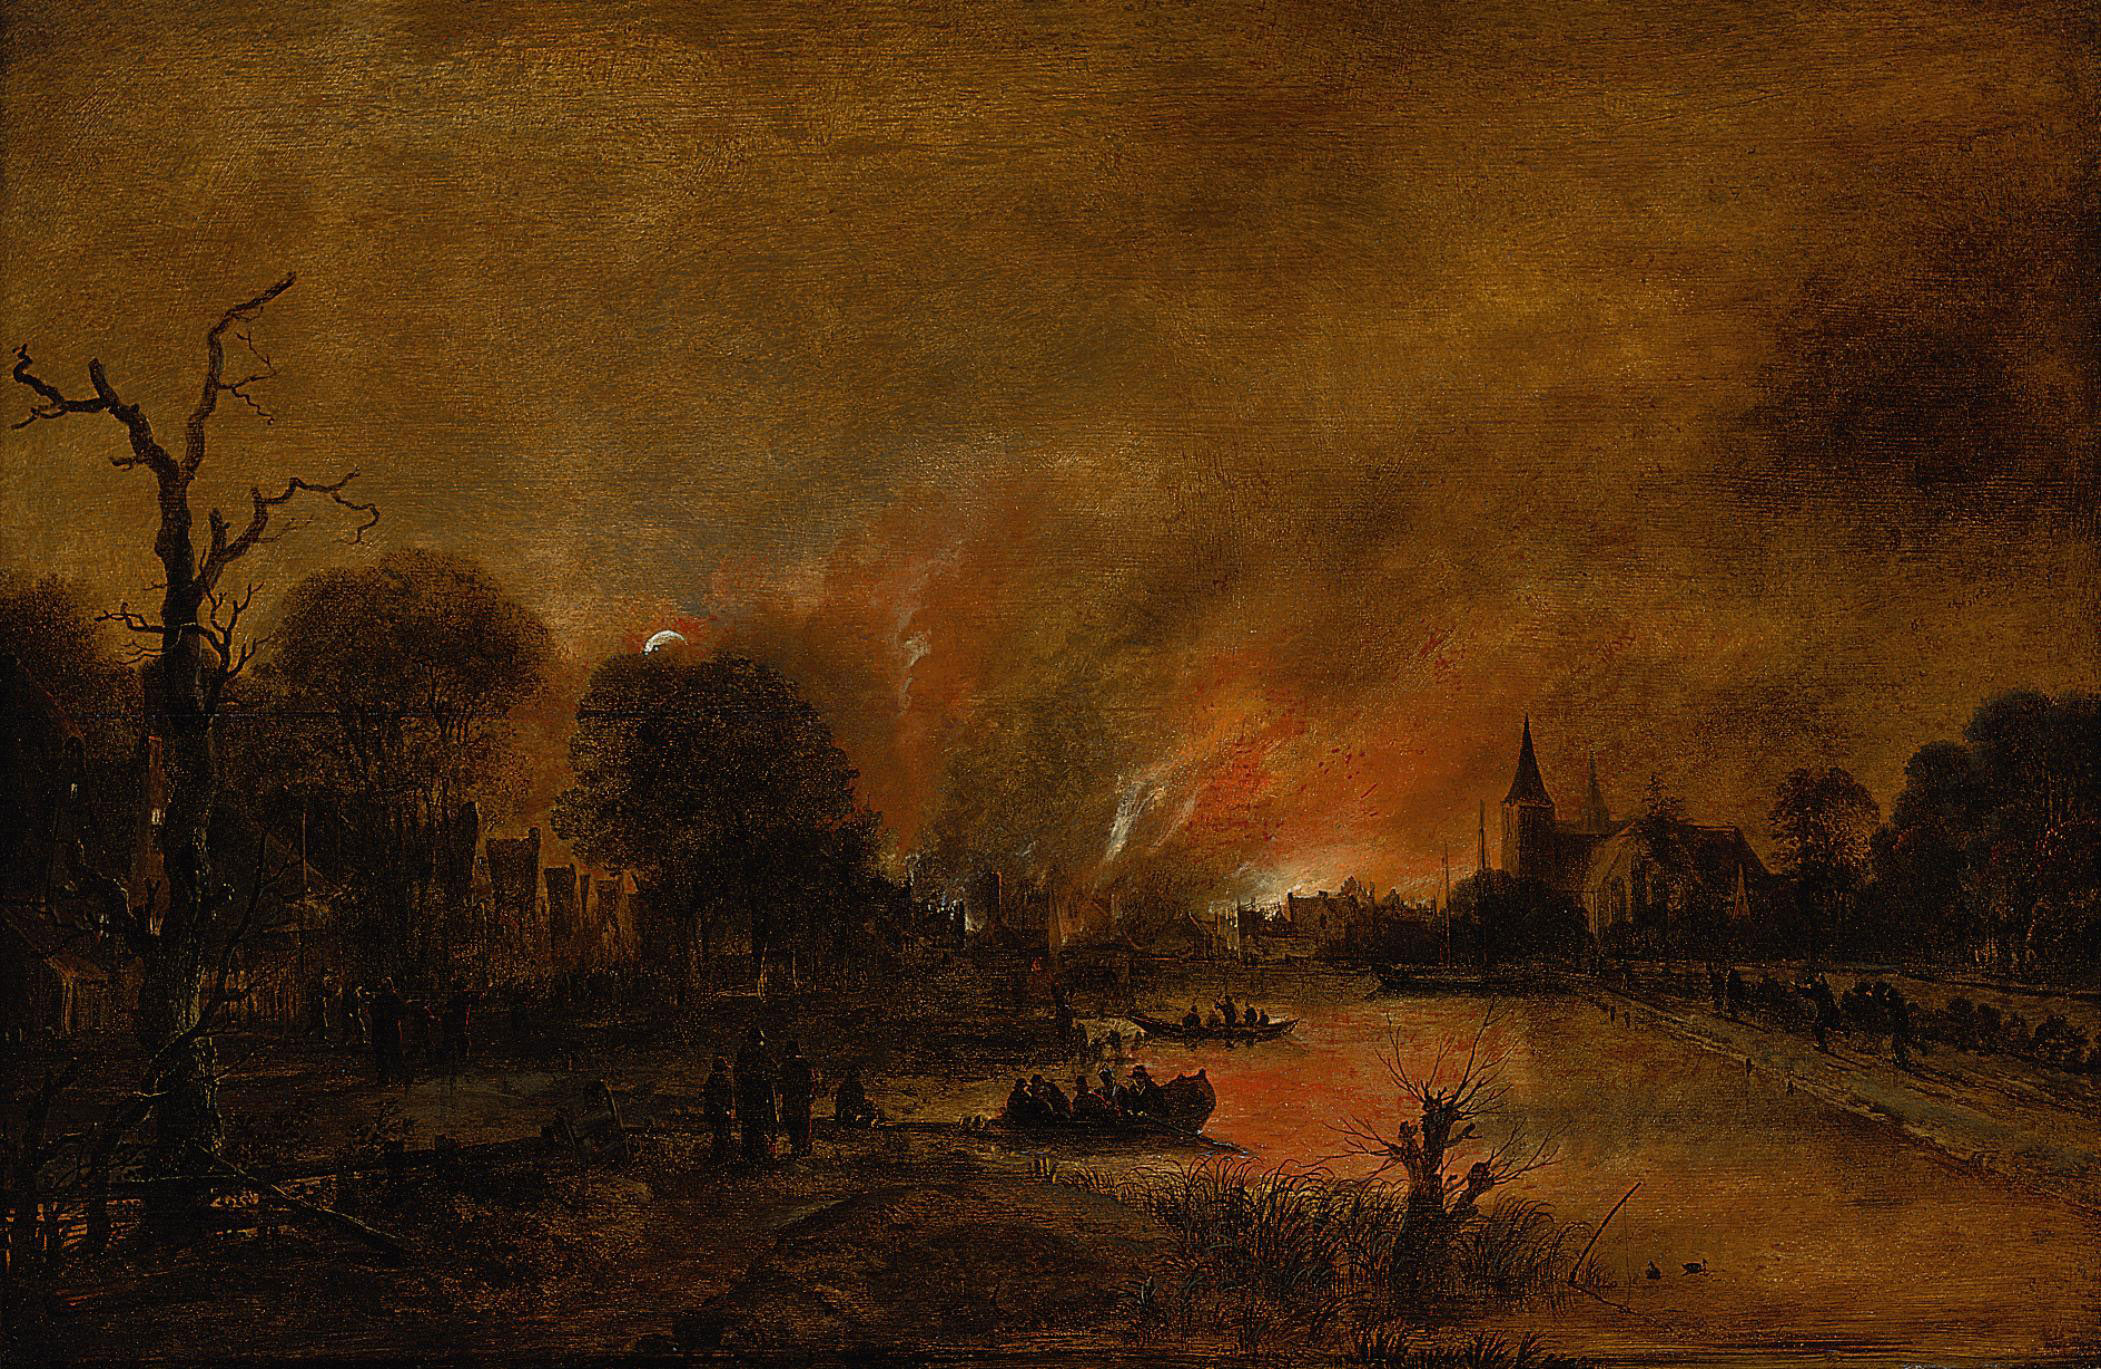 A moonlit river landscape with figures quenching a fire in a town beyond